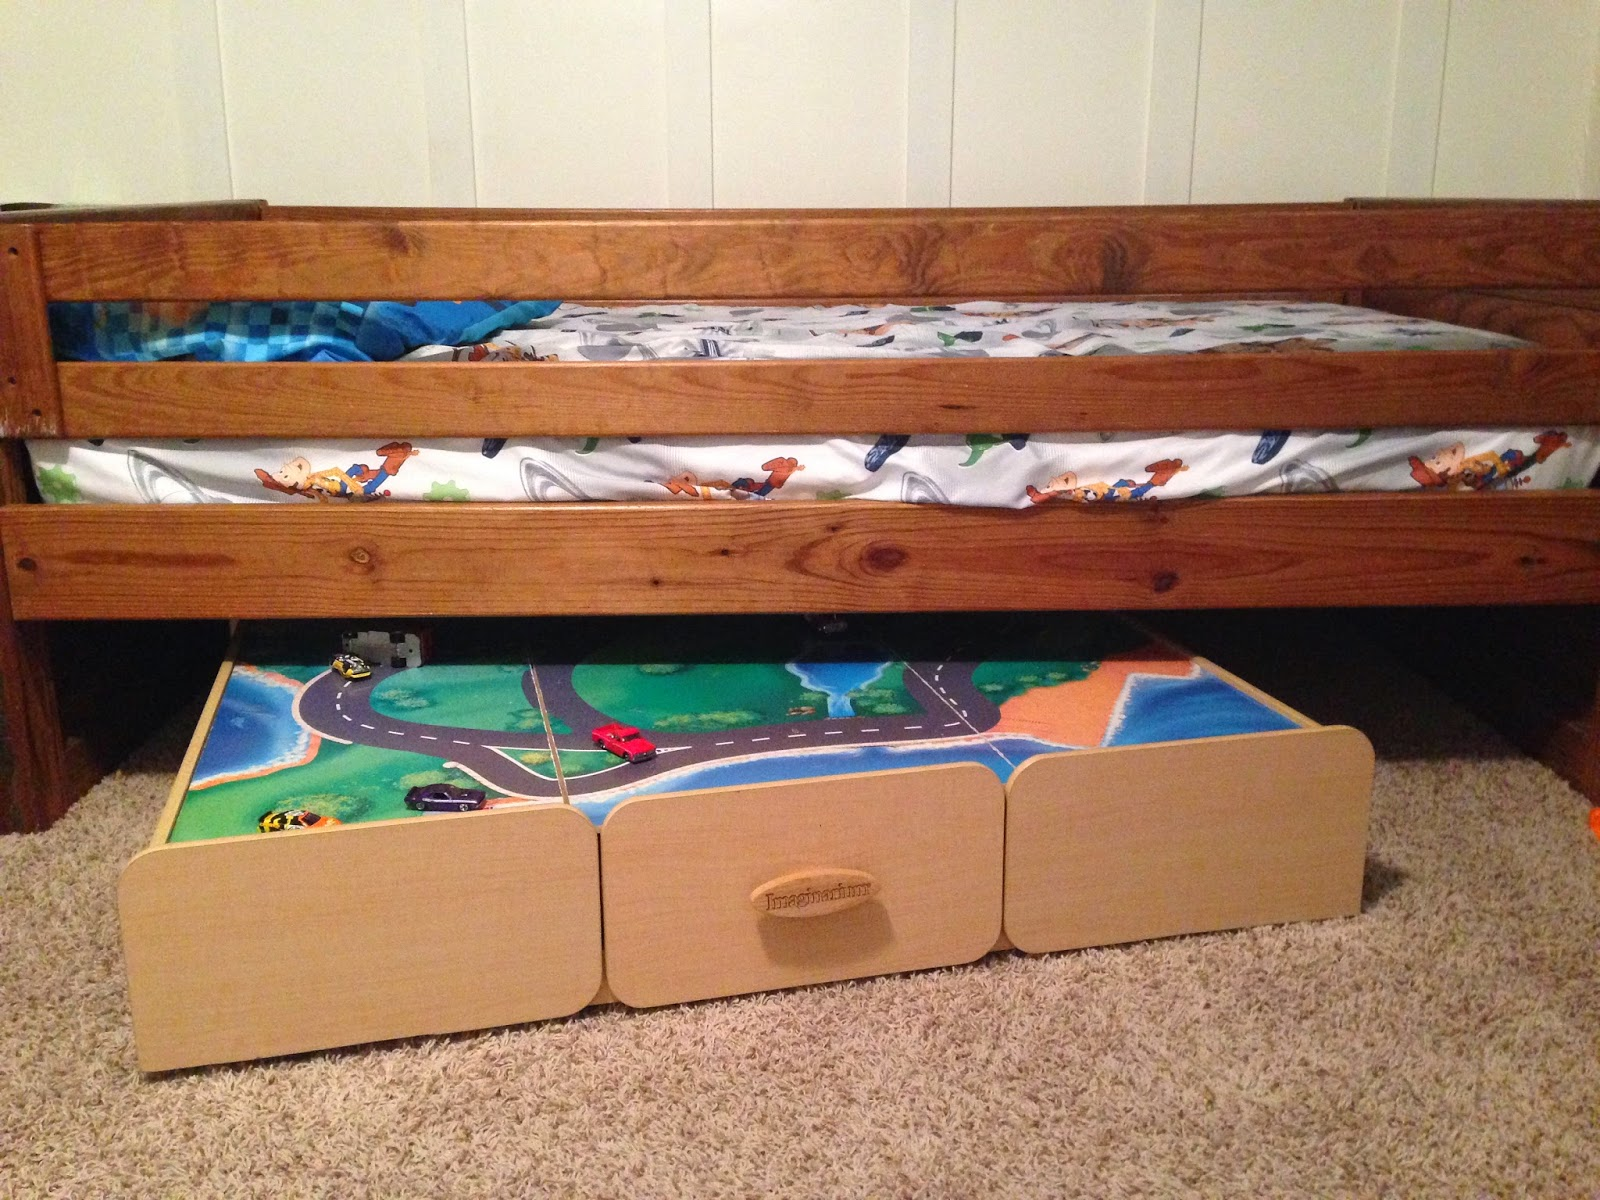 The Copper Coconut: Under The Bed Play Table